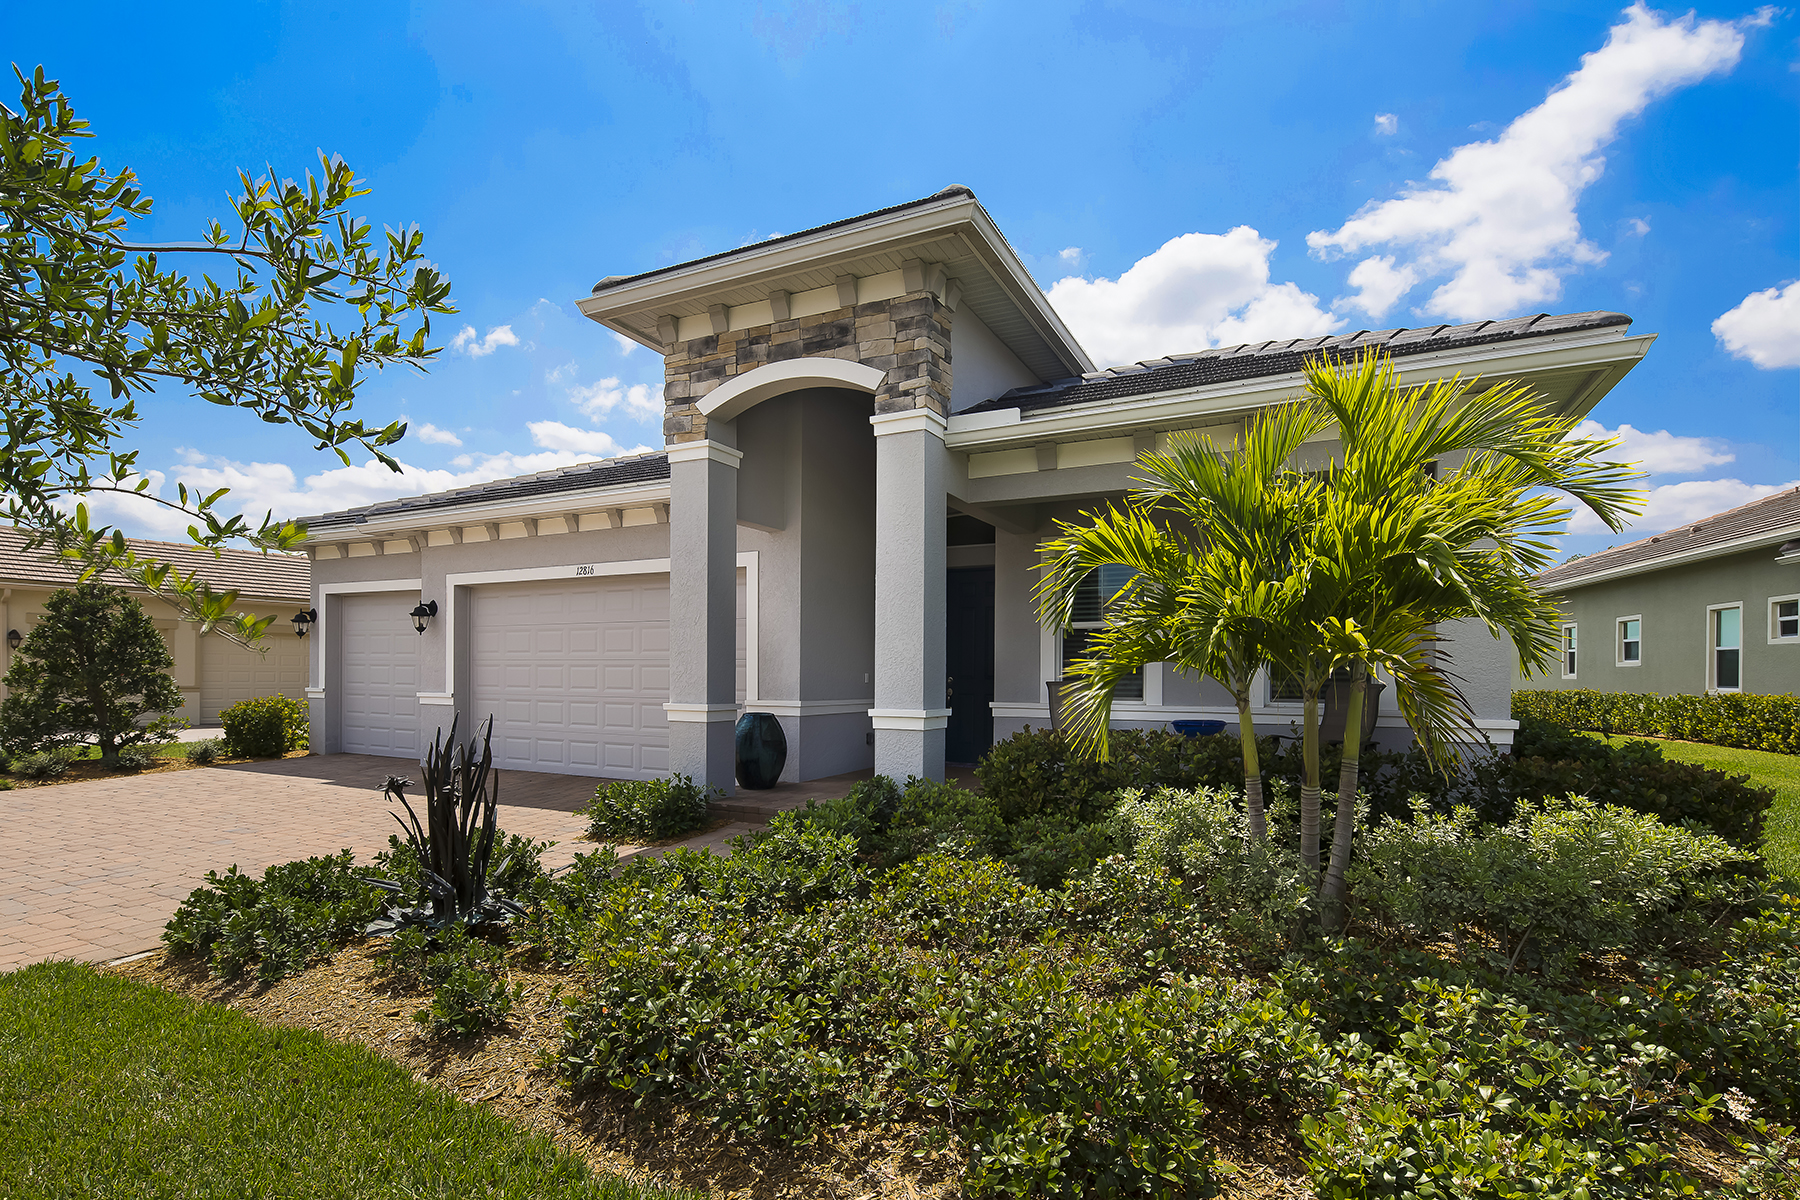 Single Family Home for Sale at VERANDAH - FAIRWAY COVE 12816 Fairway Cove Ct, Fort Myers, Florida, 33905 United States